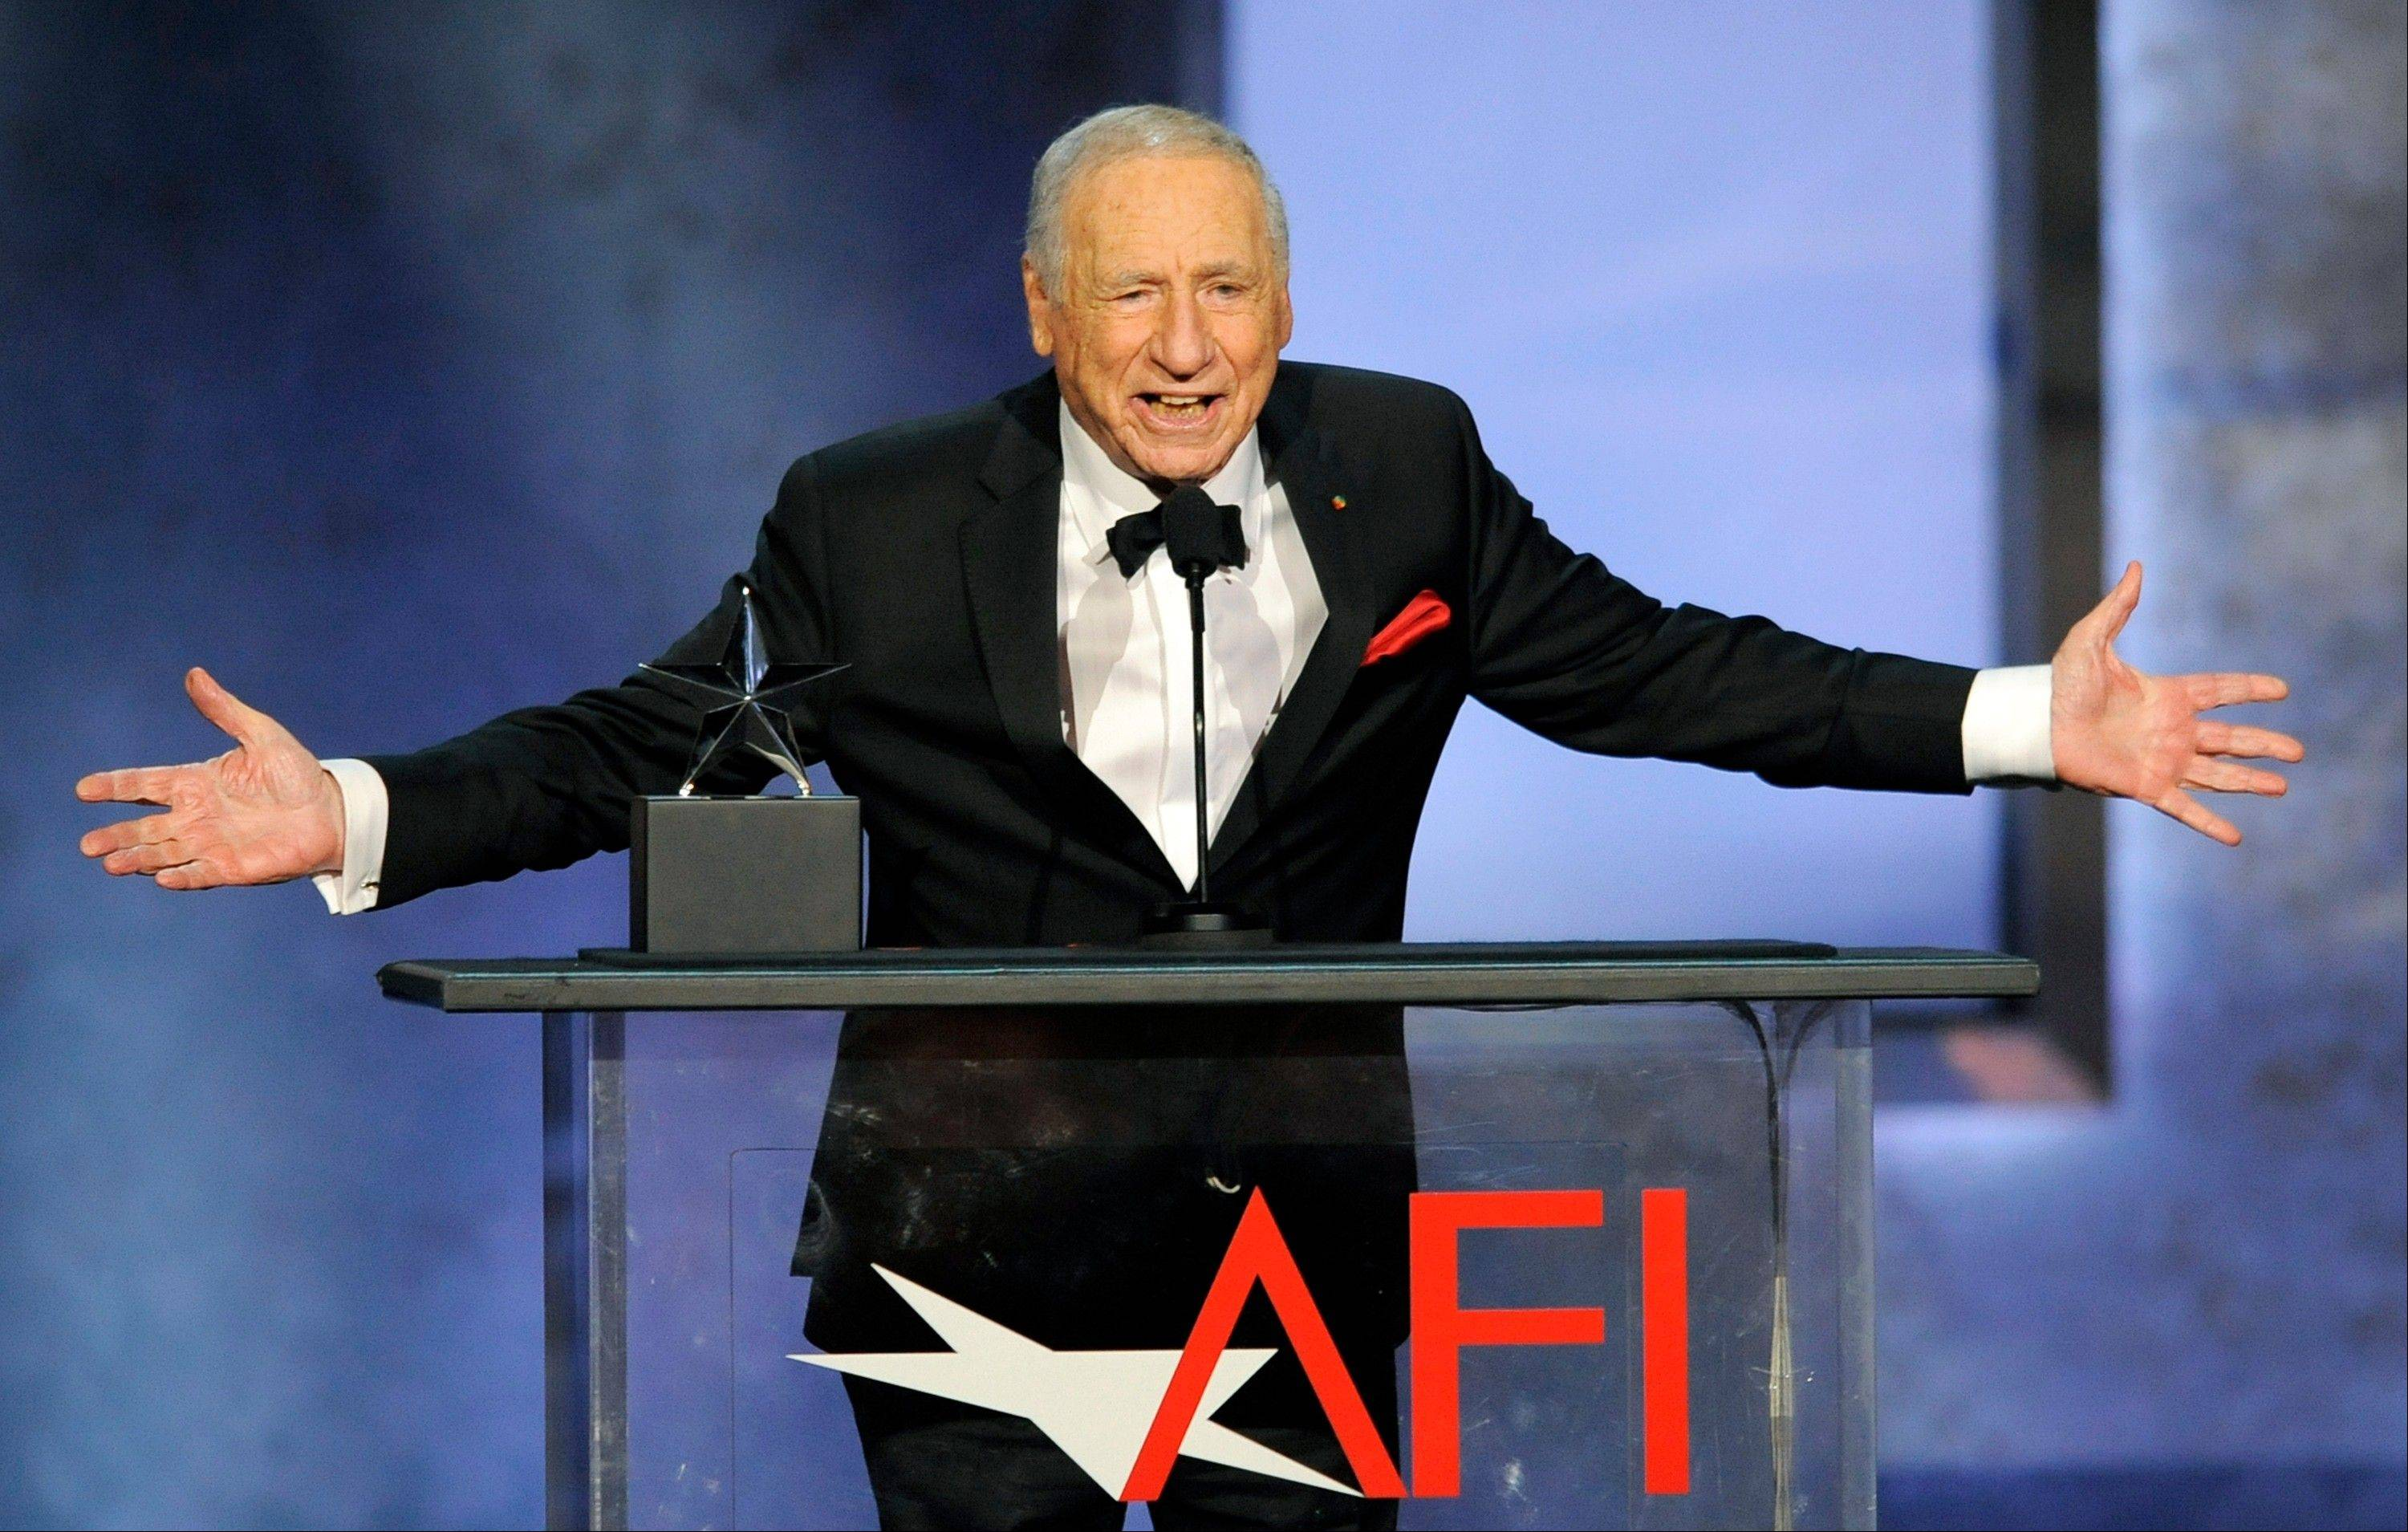 Honoree Mel Brooks addresses the audience during the American Film Institute's 41st Lifetime Achievement Award Gala at the Dolby Theatre on Thursday in Los Angeles.